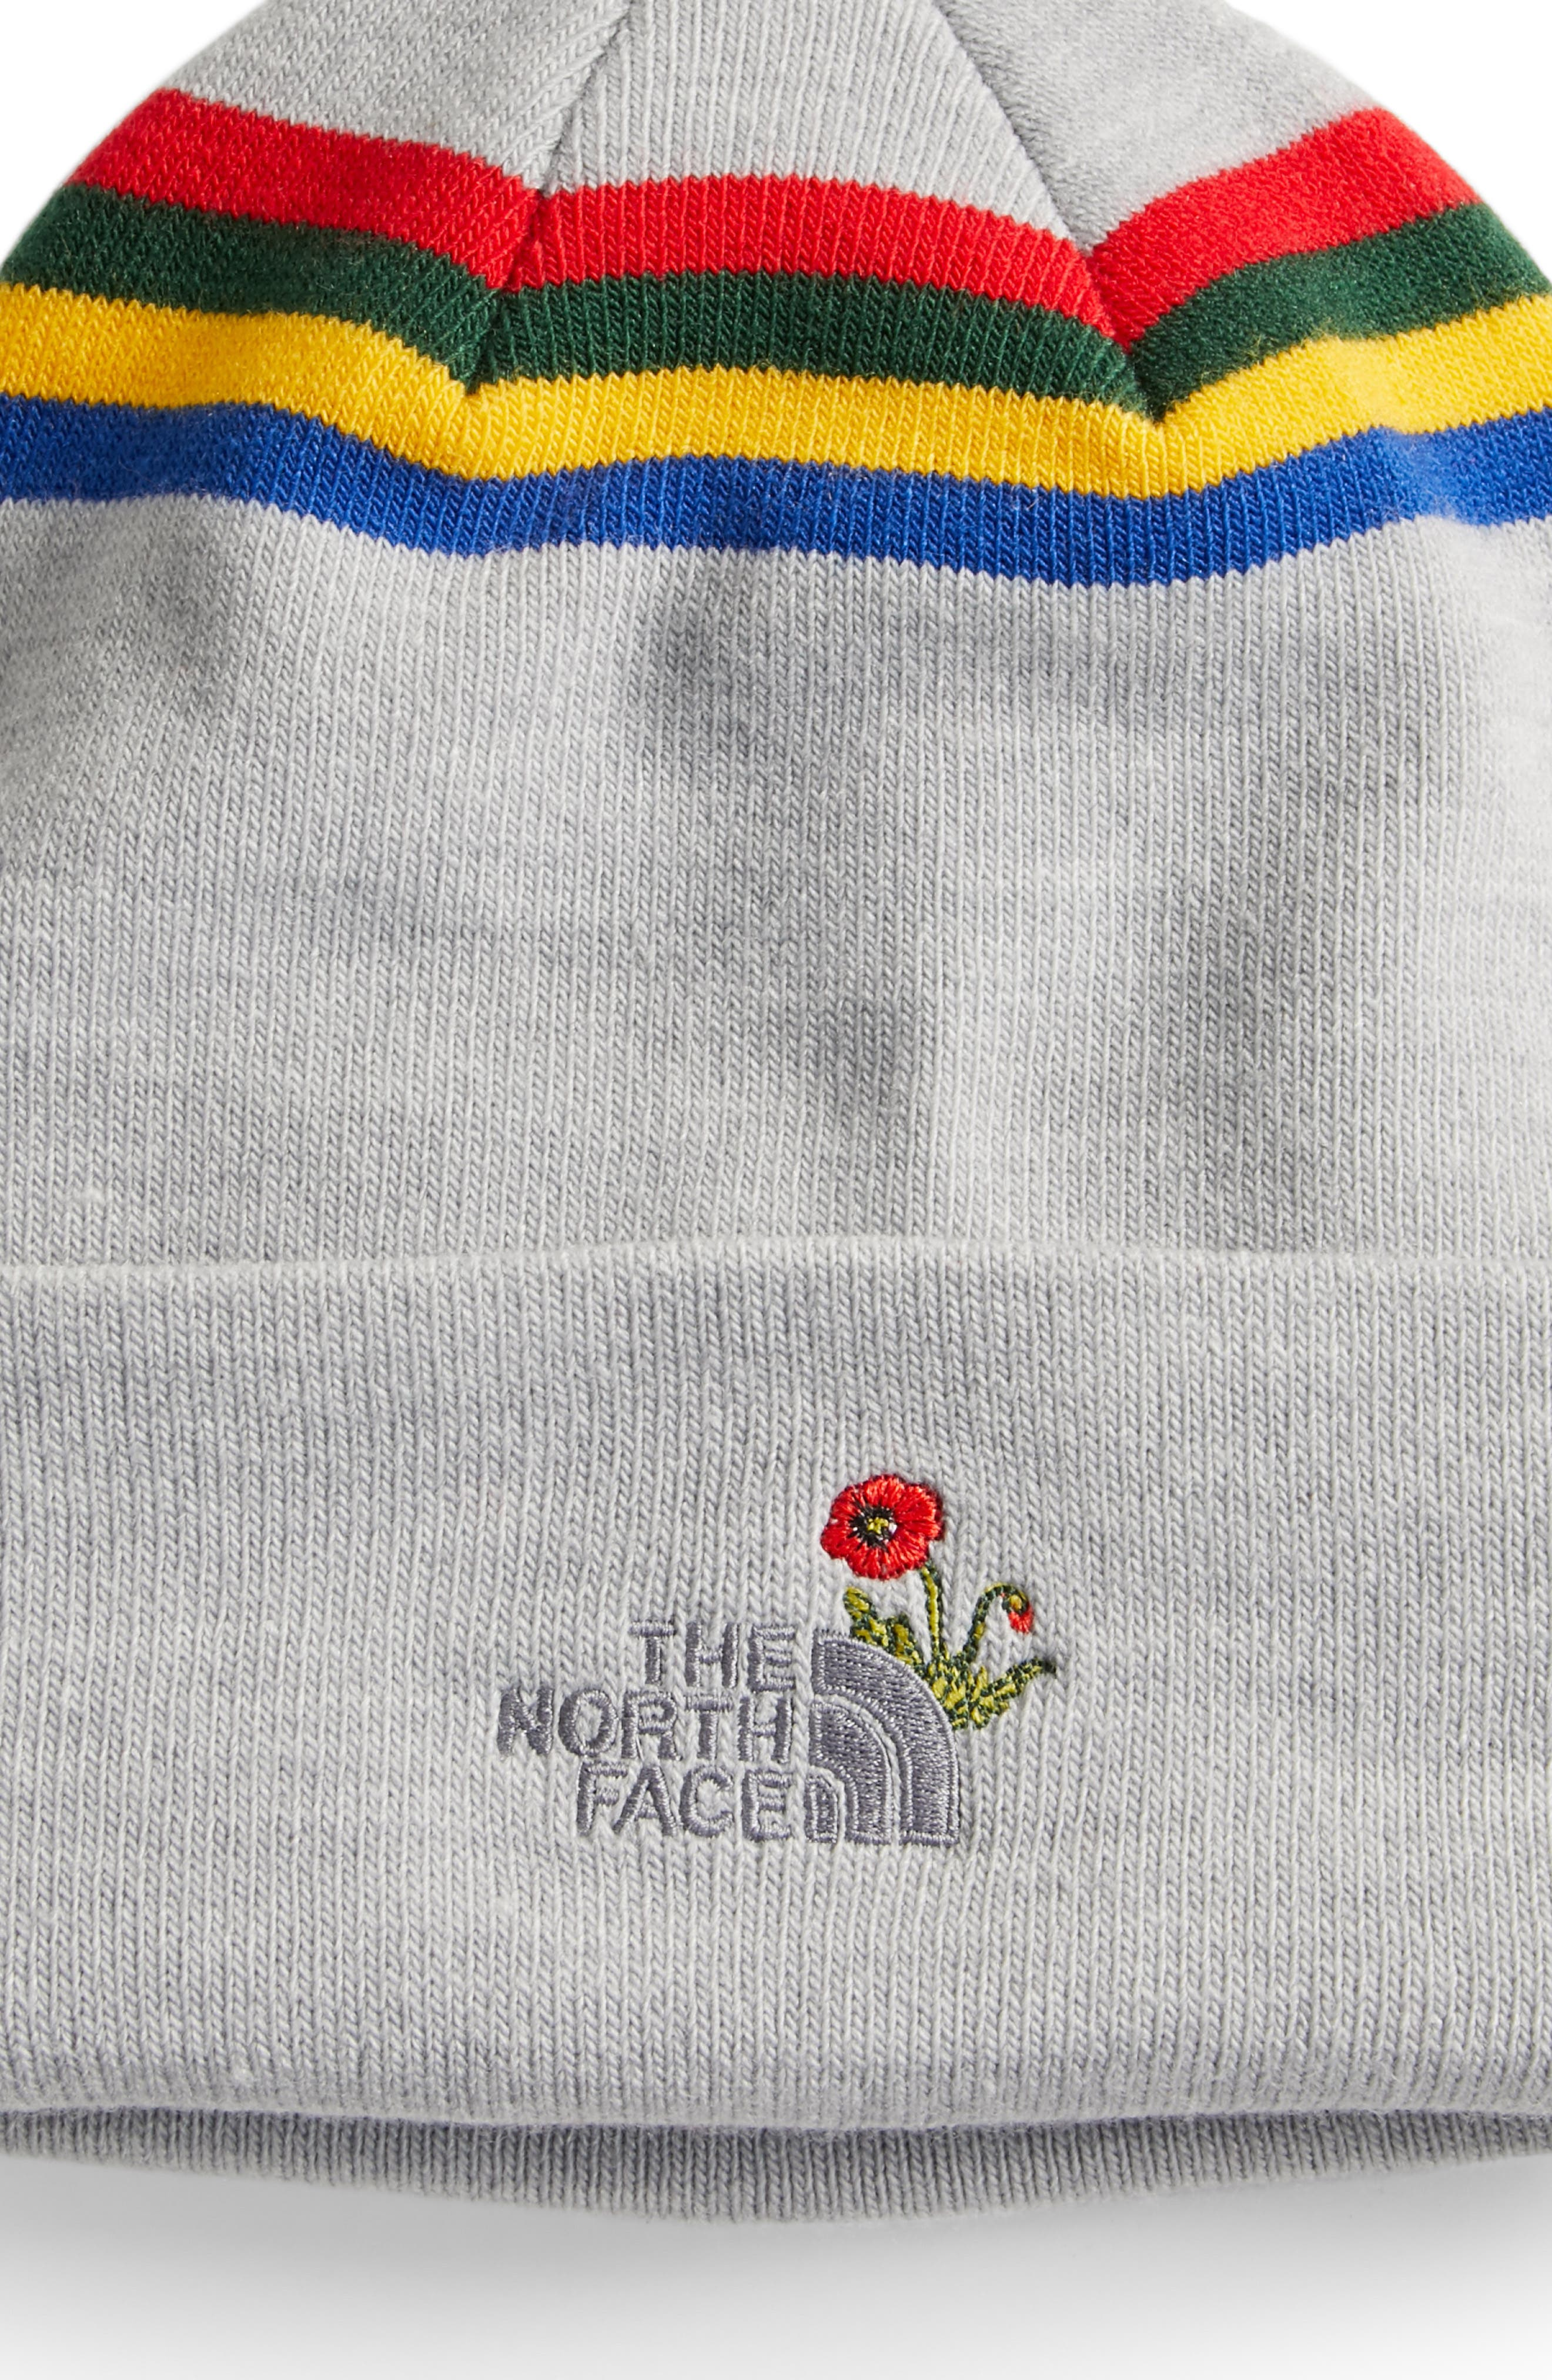 Alternate Image 2  - The North Face Poppy Dock Workers Beanie